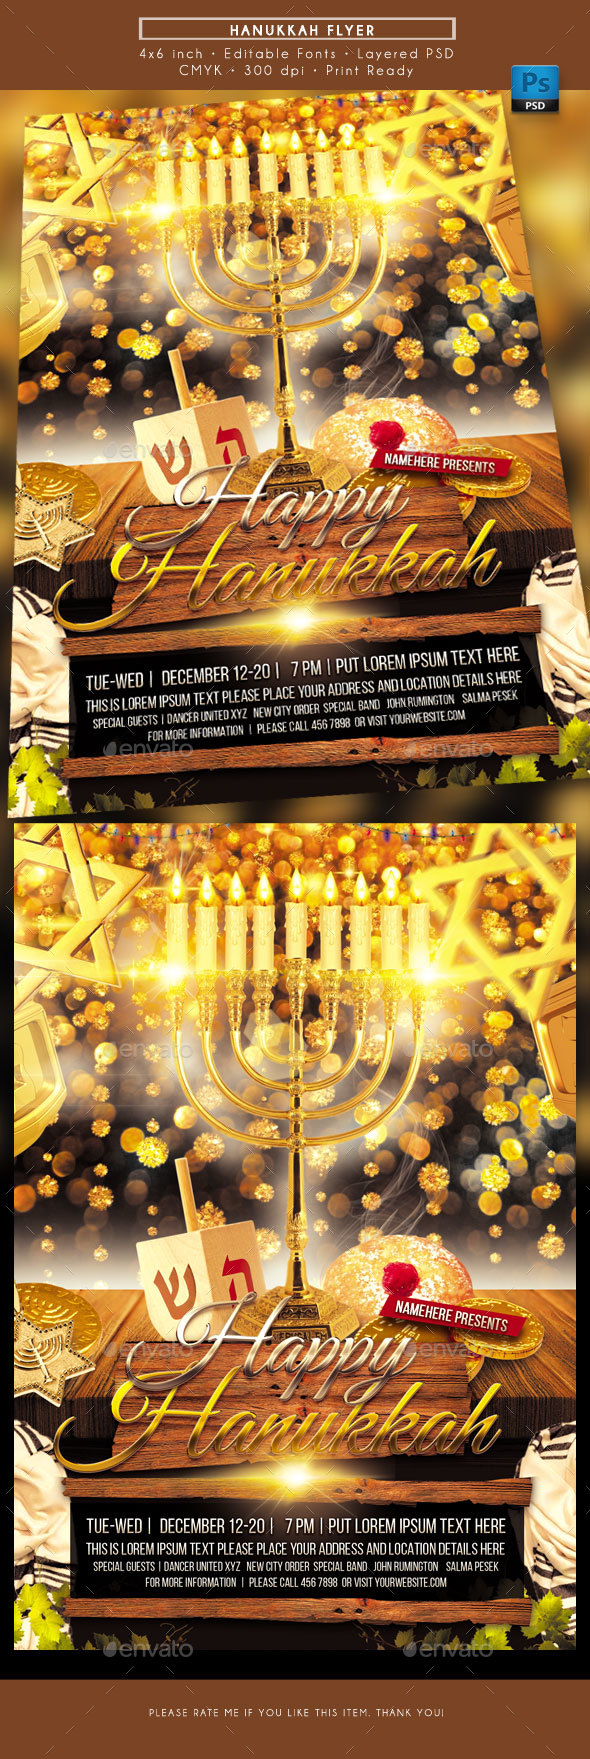 GraphicRiver Hanukkah Flyer 21026080